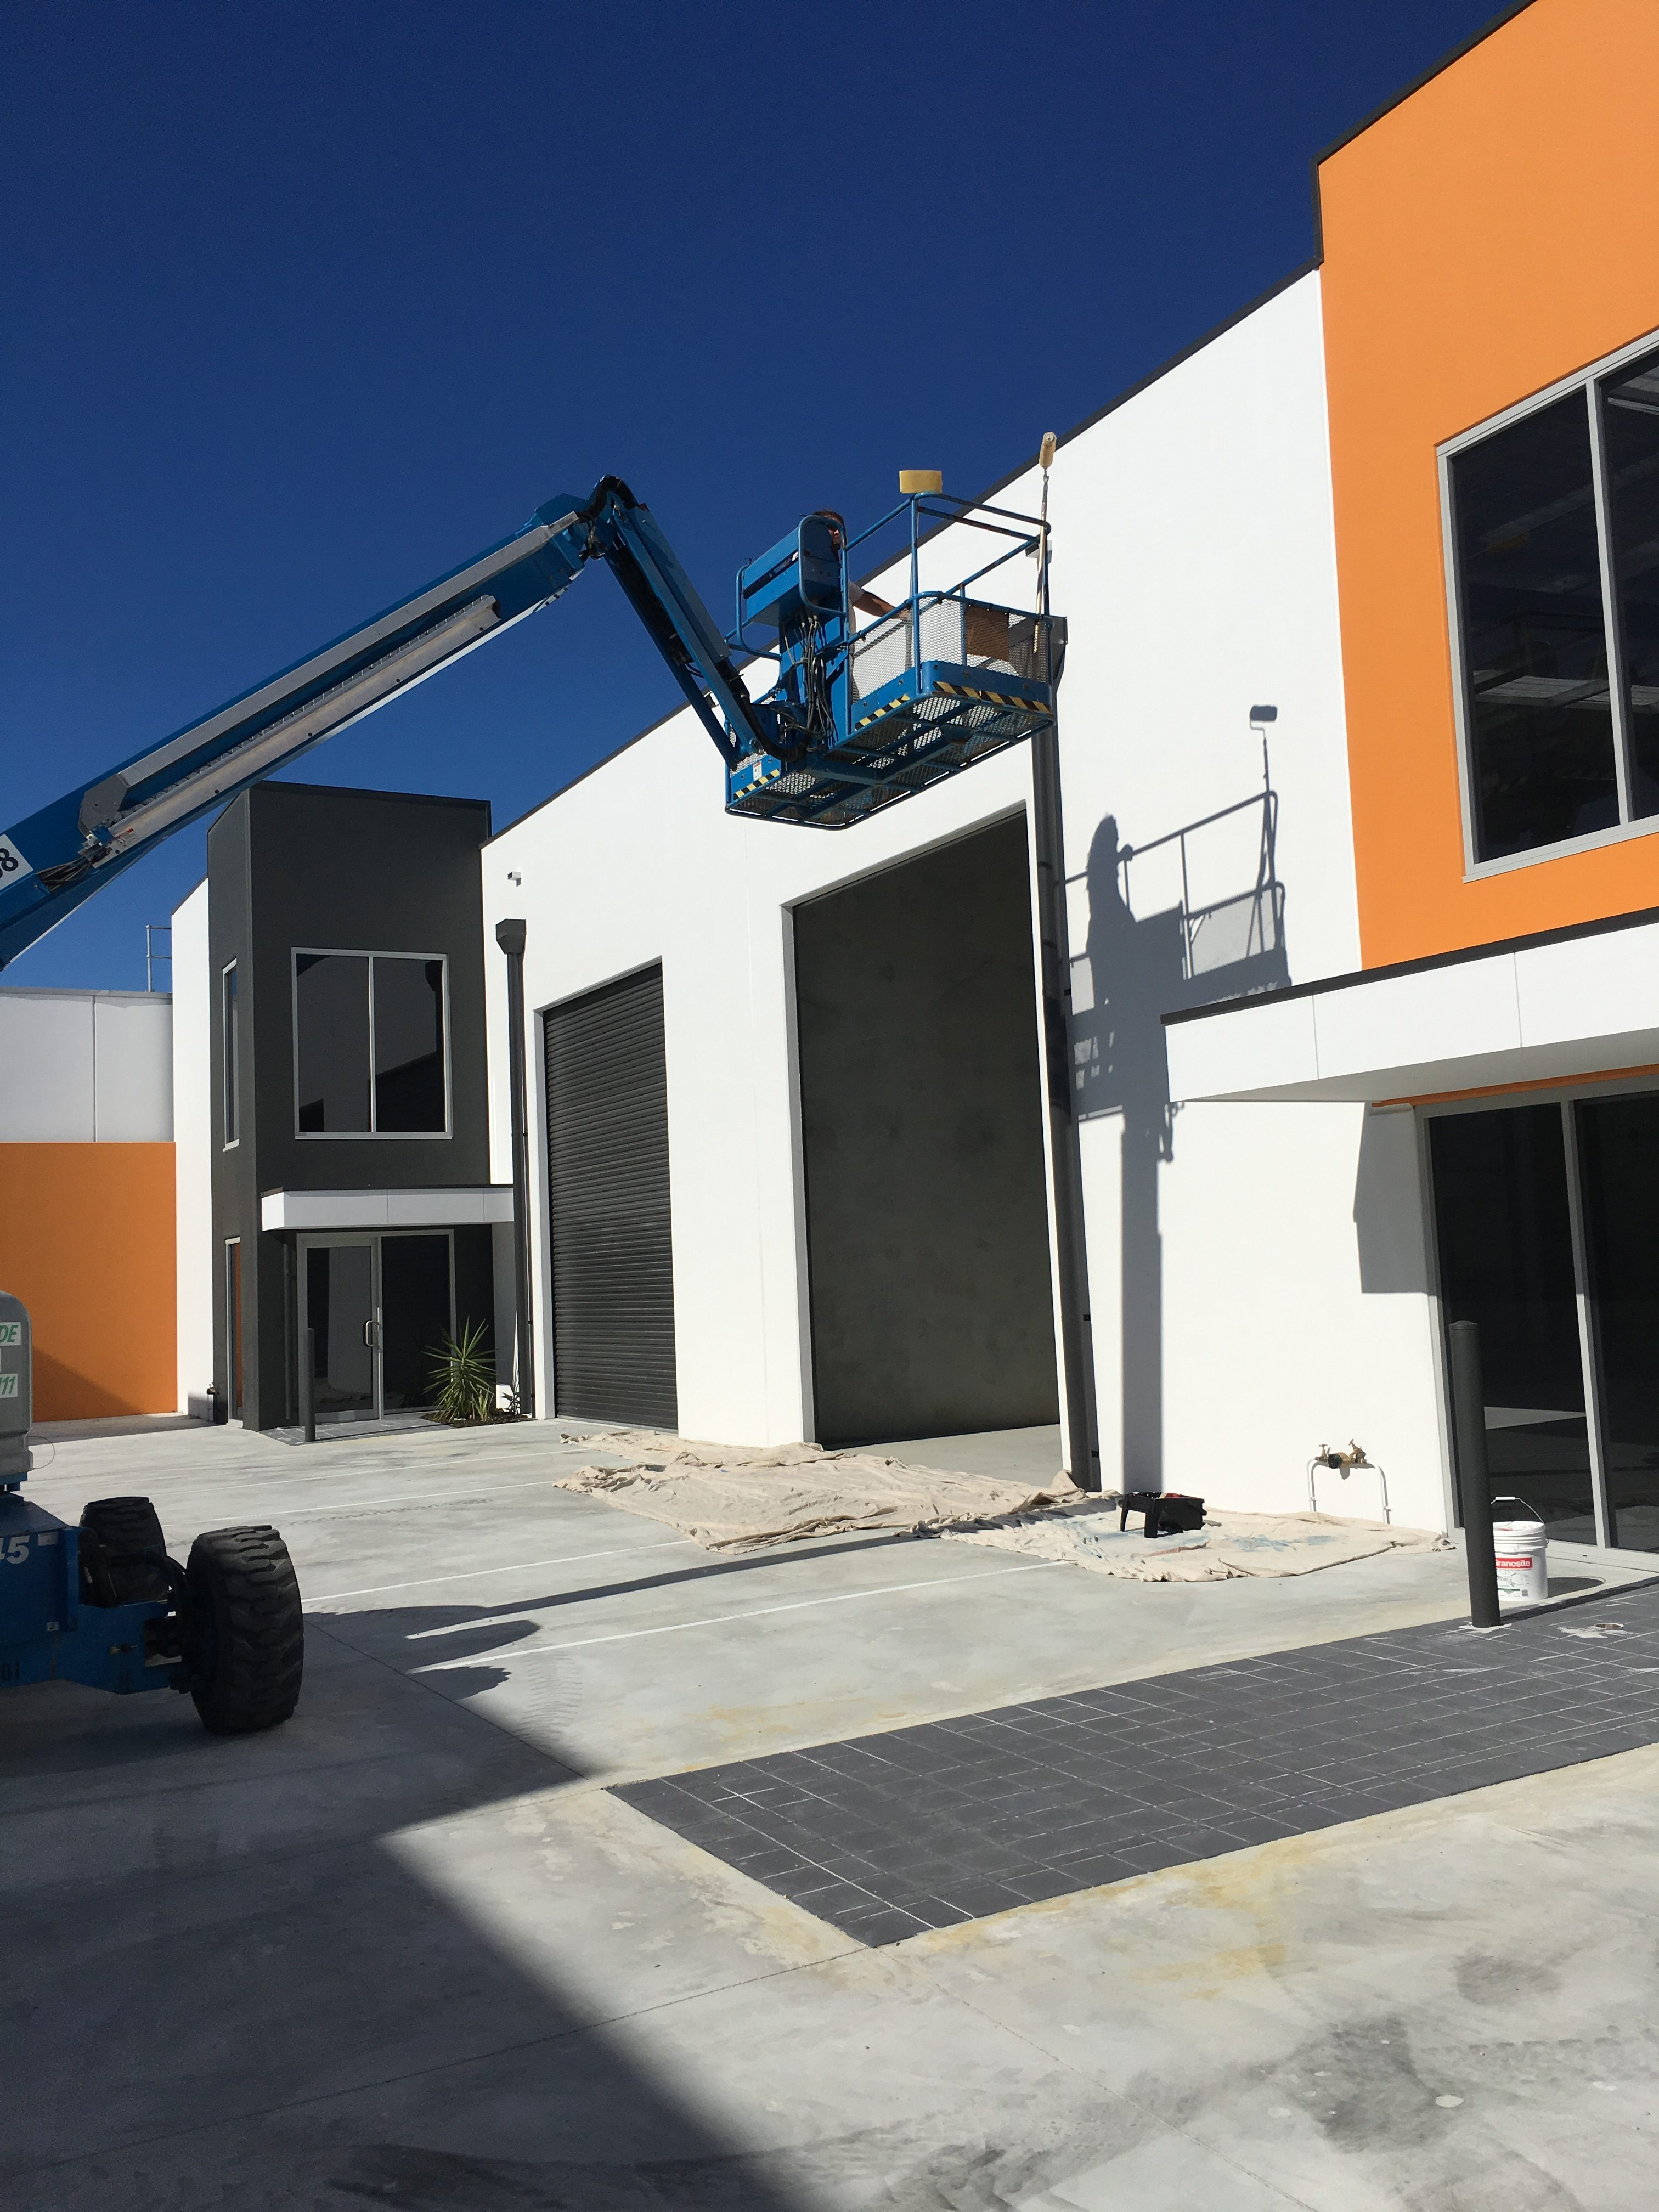 Blue cherry picker parked in front of newly painted commercial warehouse unit finished in white and orange